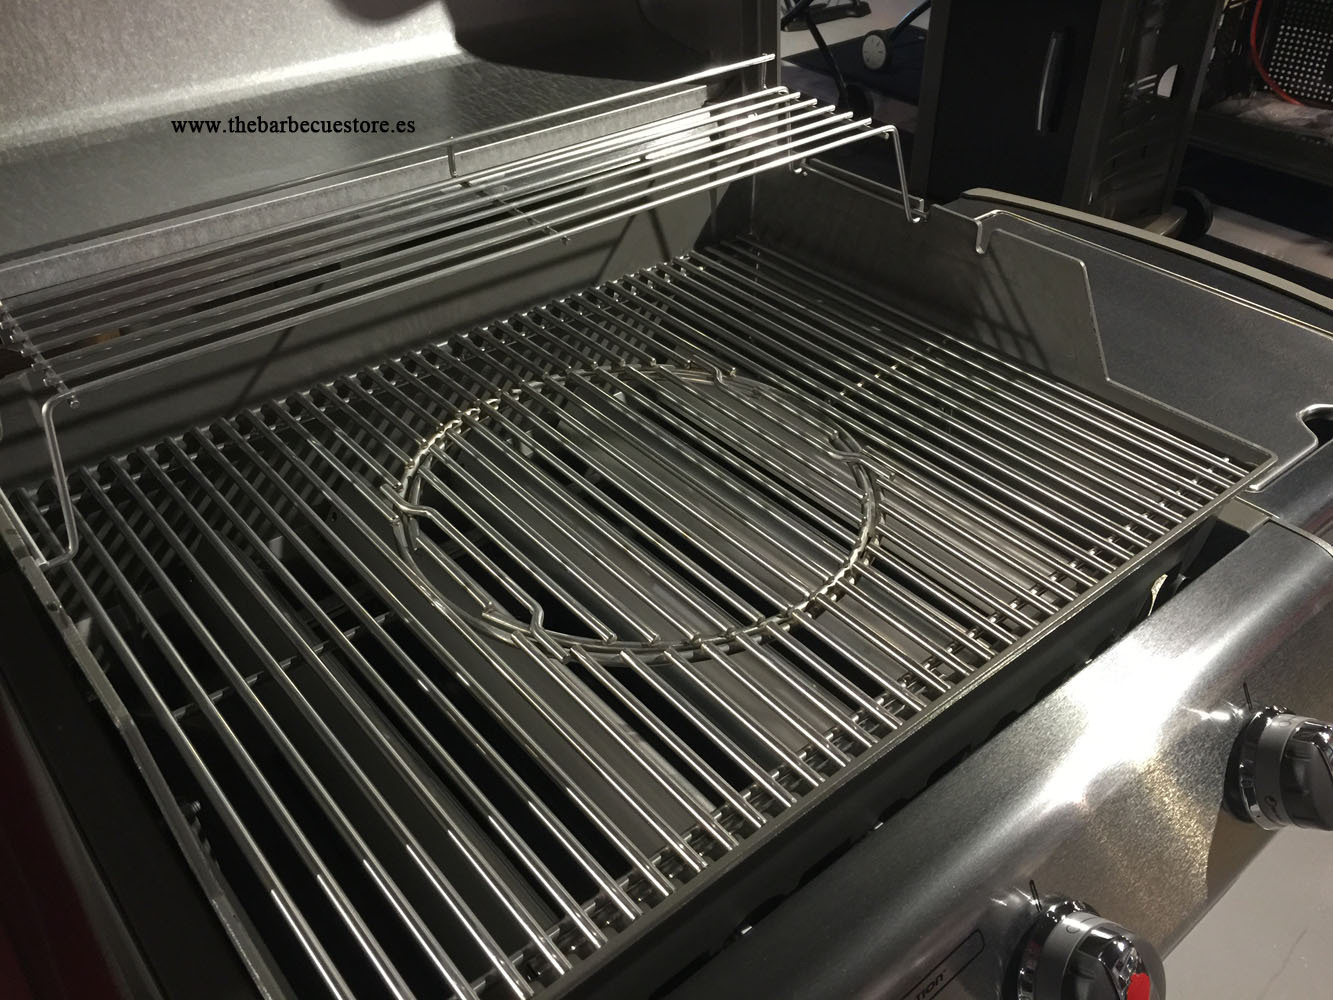 Weber Genesis S 330 Gbs Stainless Steel Bbq The Barbecue